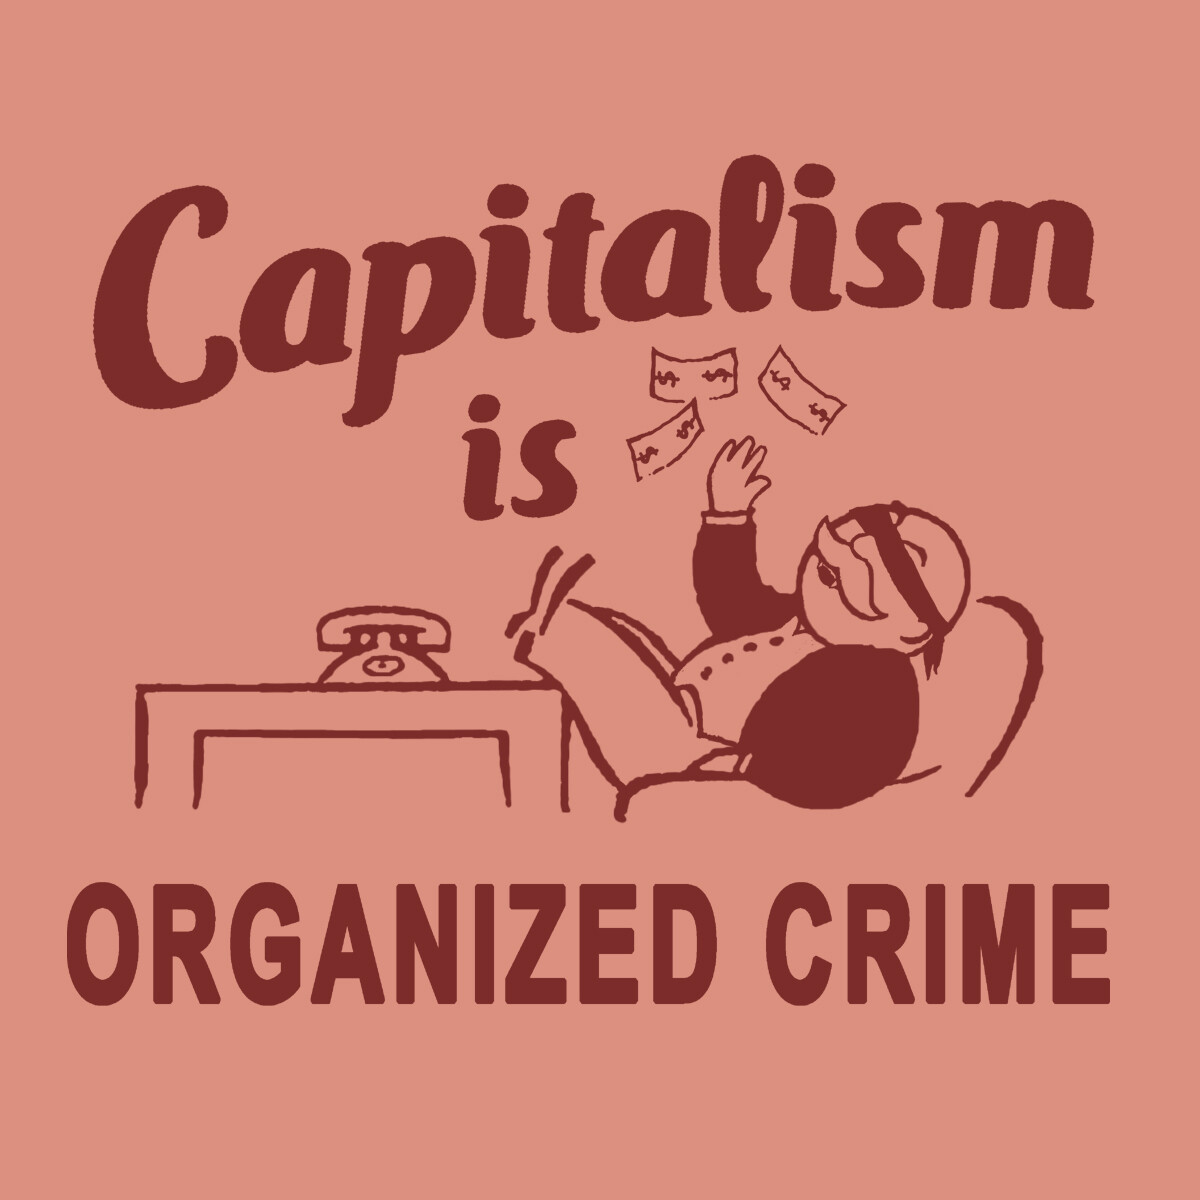 CAPITALISM the shirt